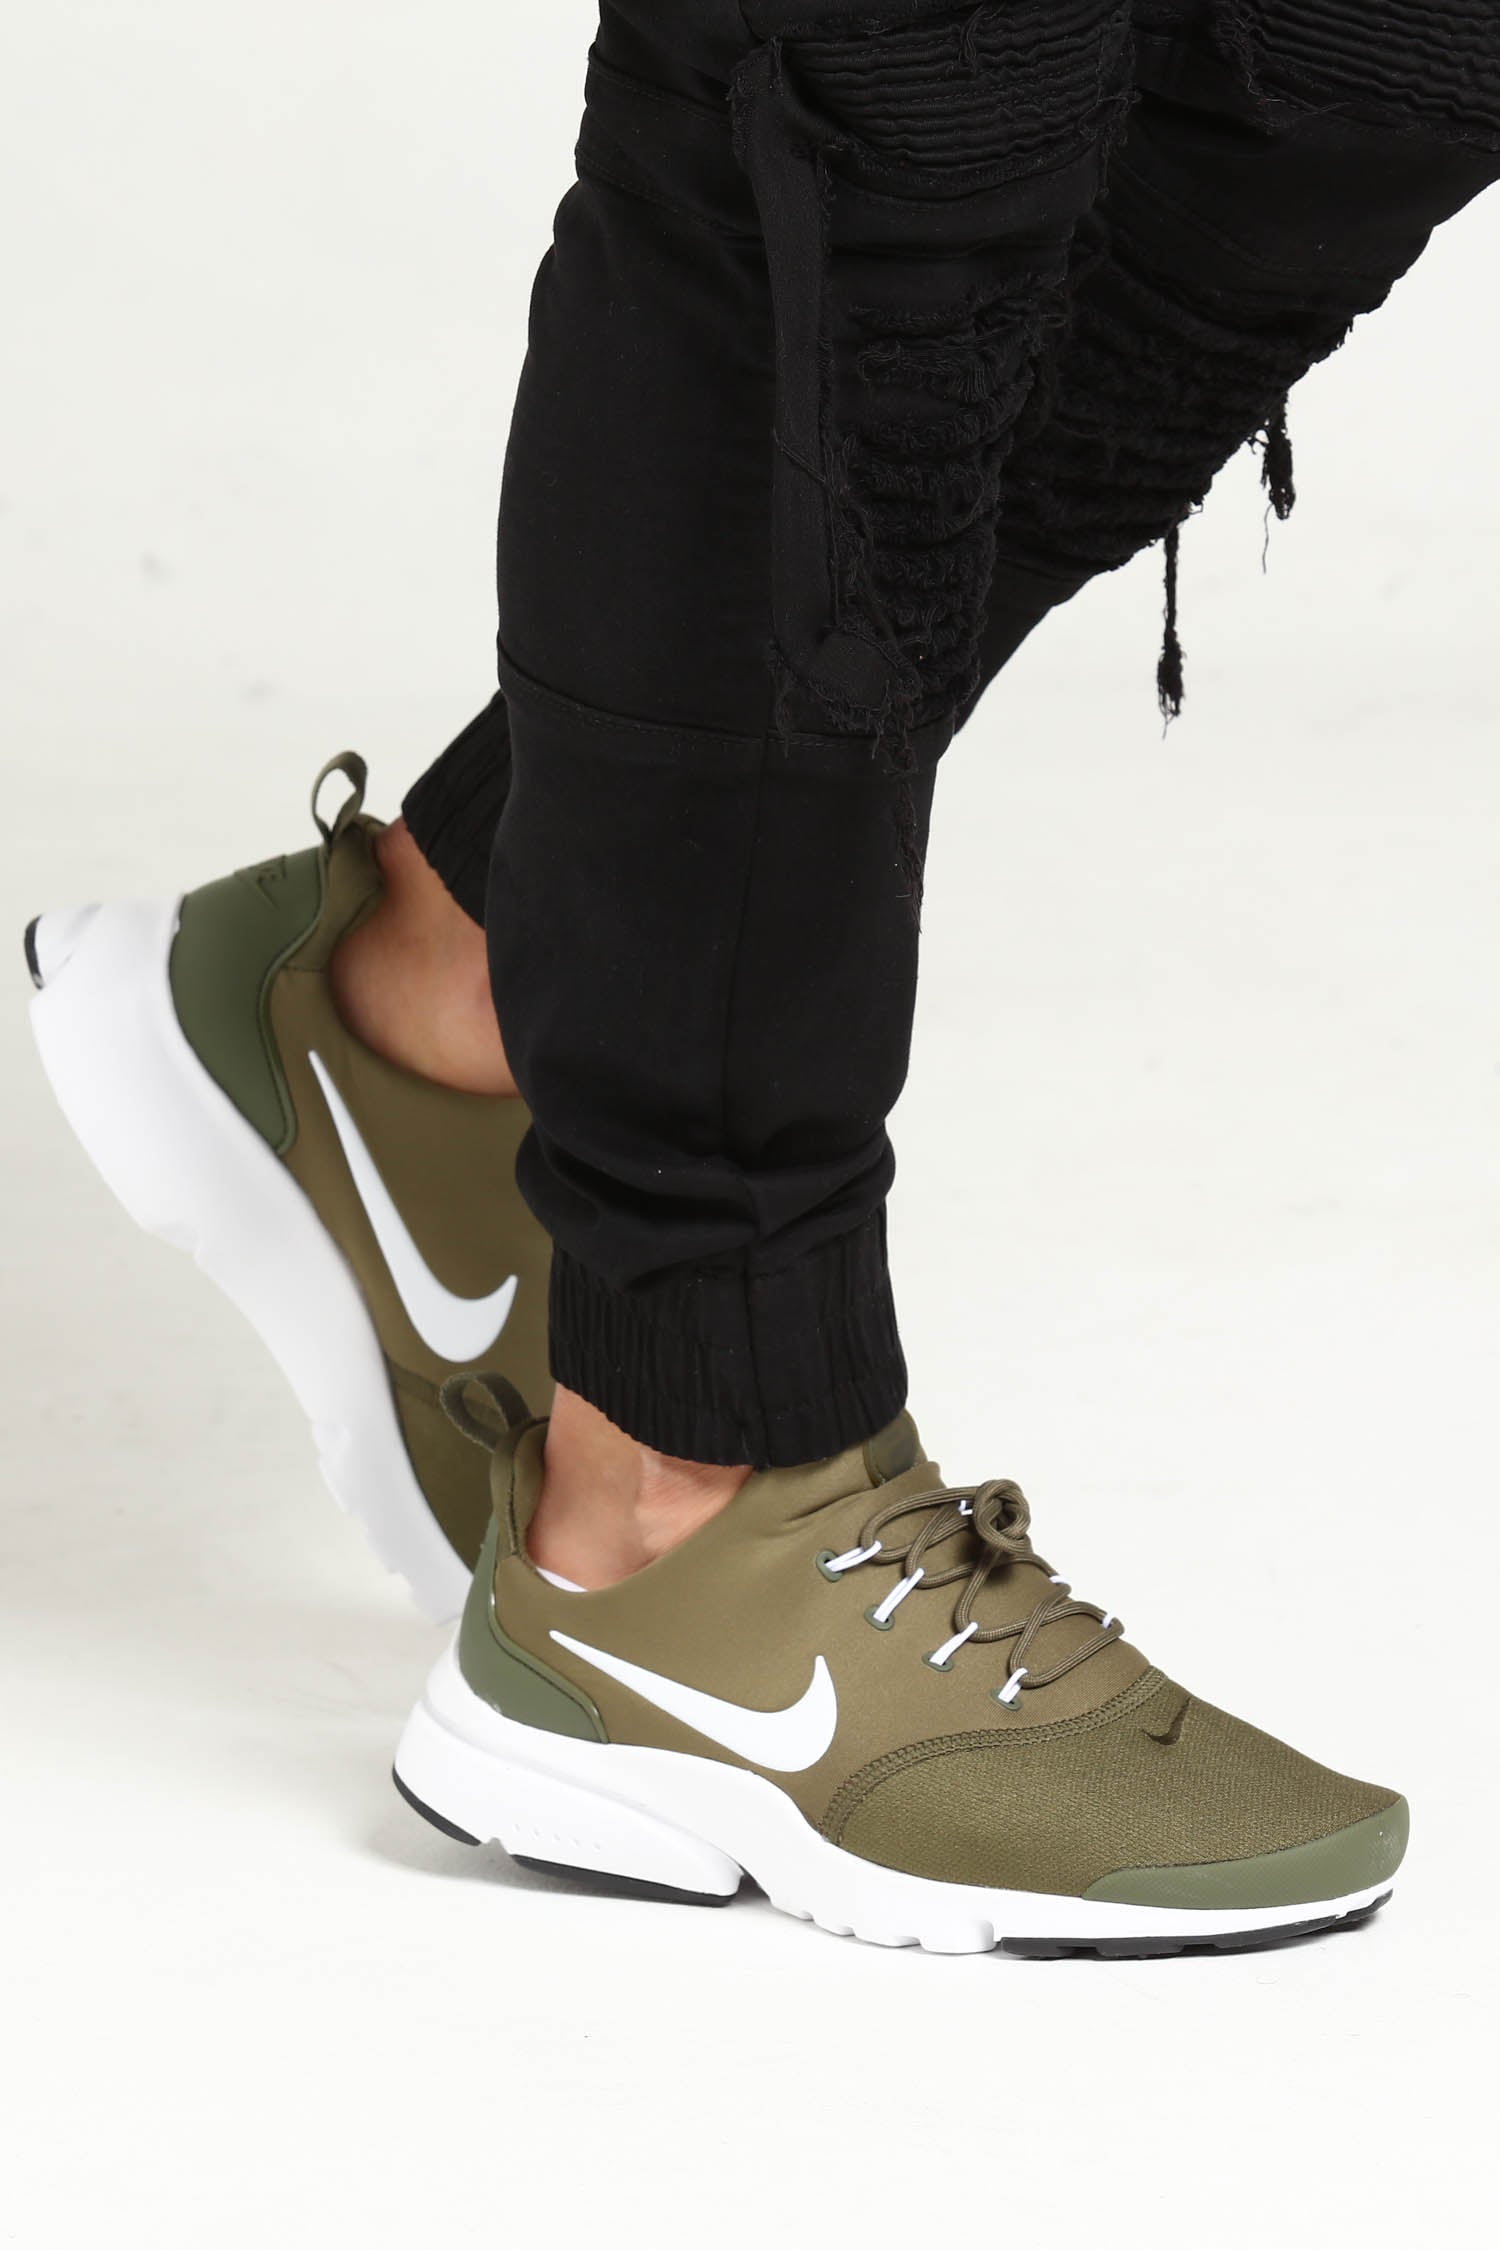 NIKE PRESTO FLY ALL OLIVE GREEN WOMENS SHOES NEW Brand new